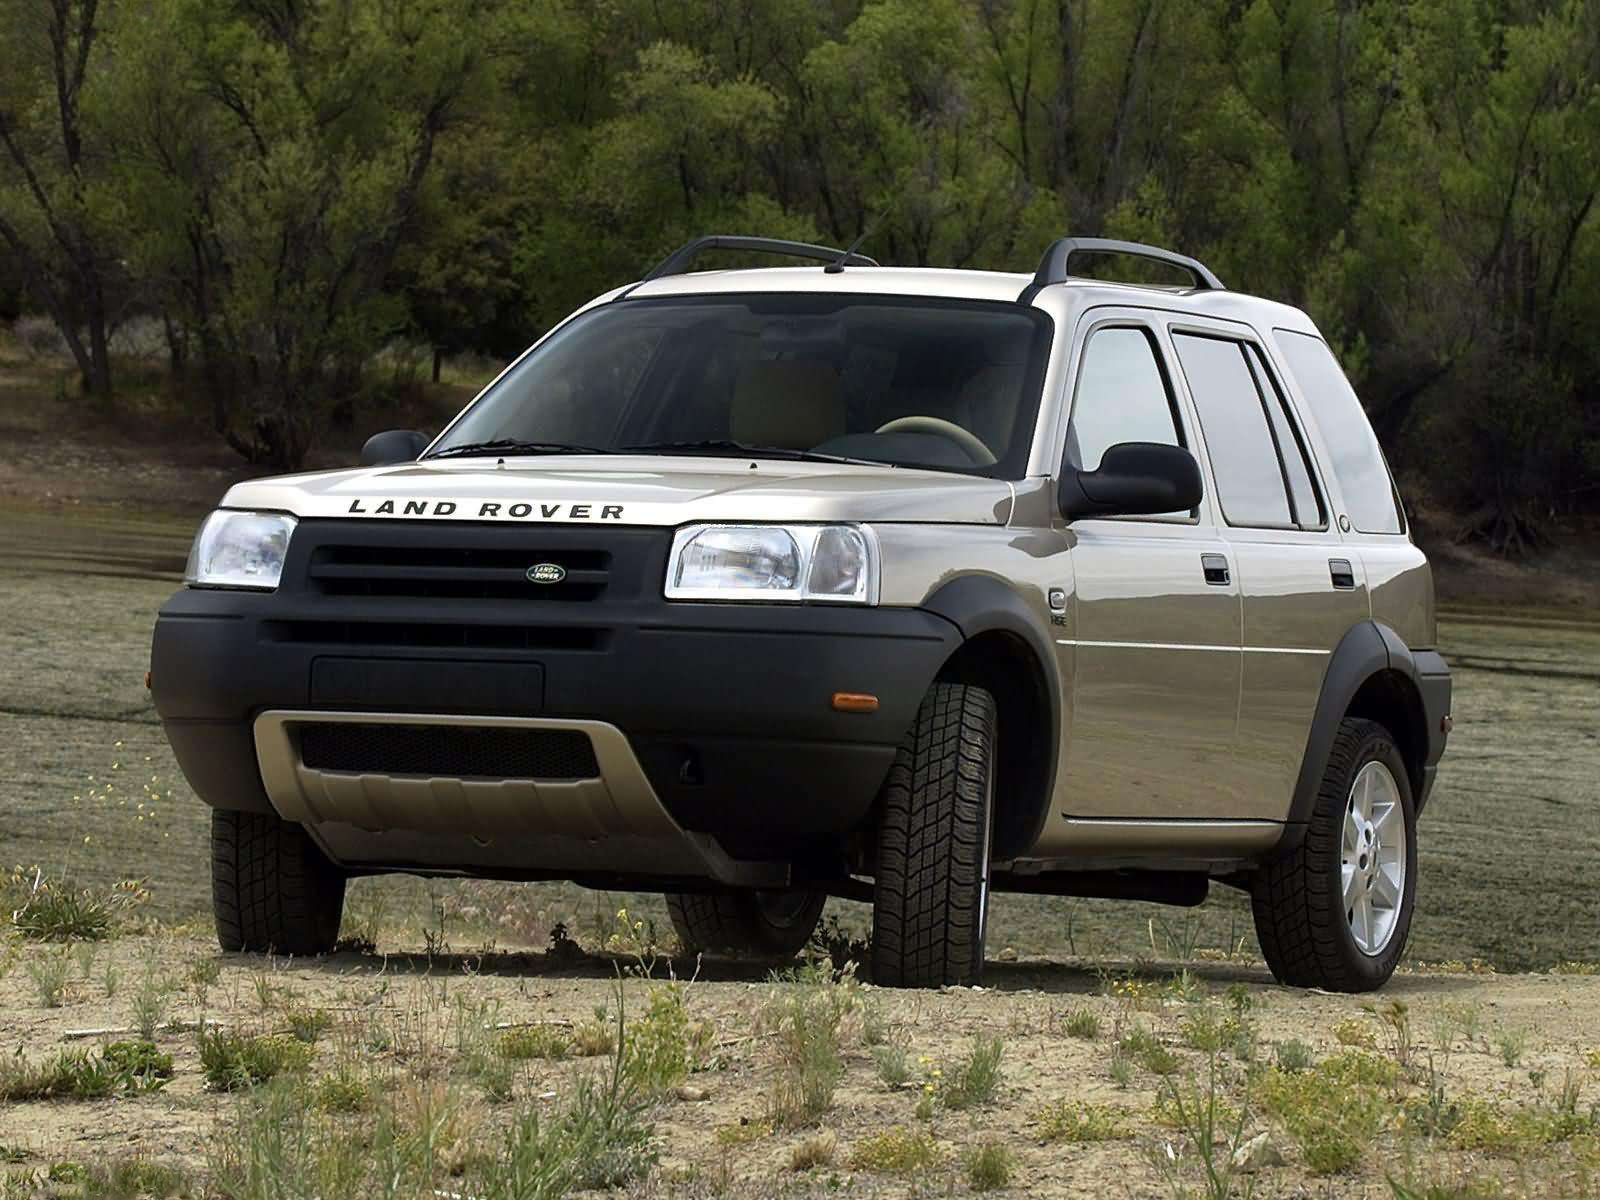 2003 land rover freelander front view